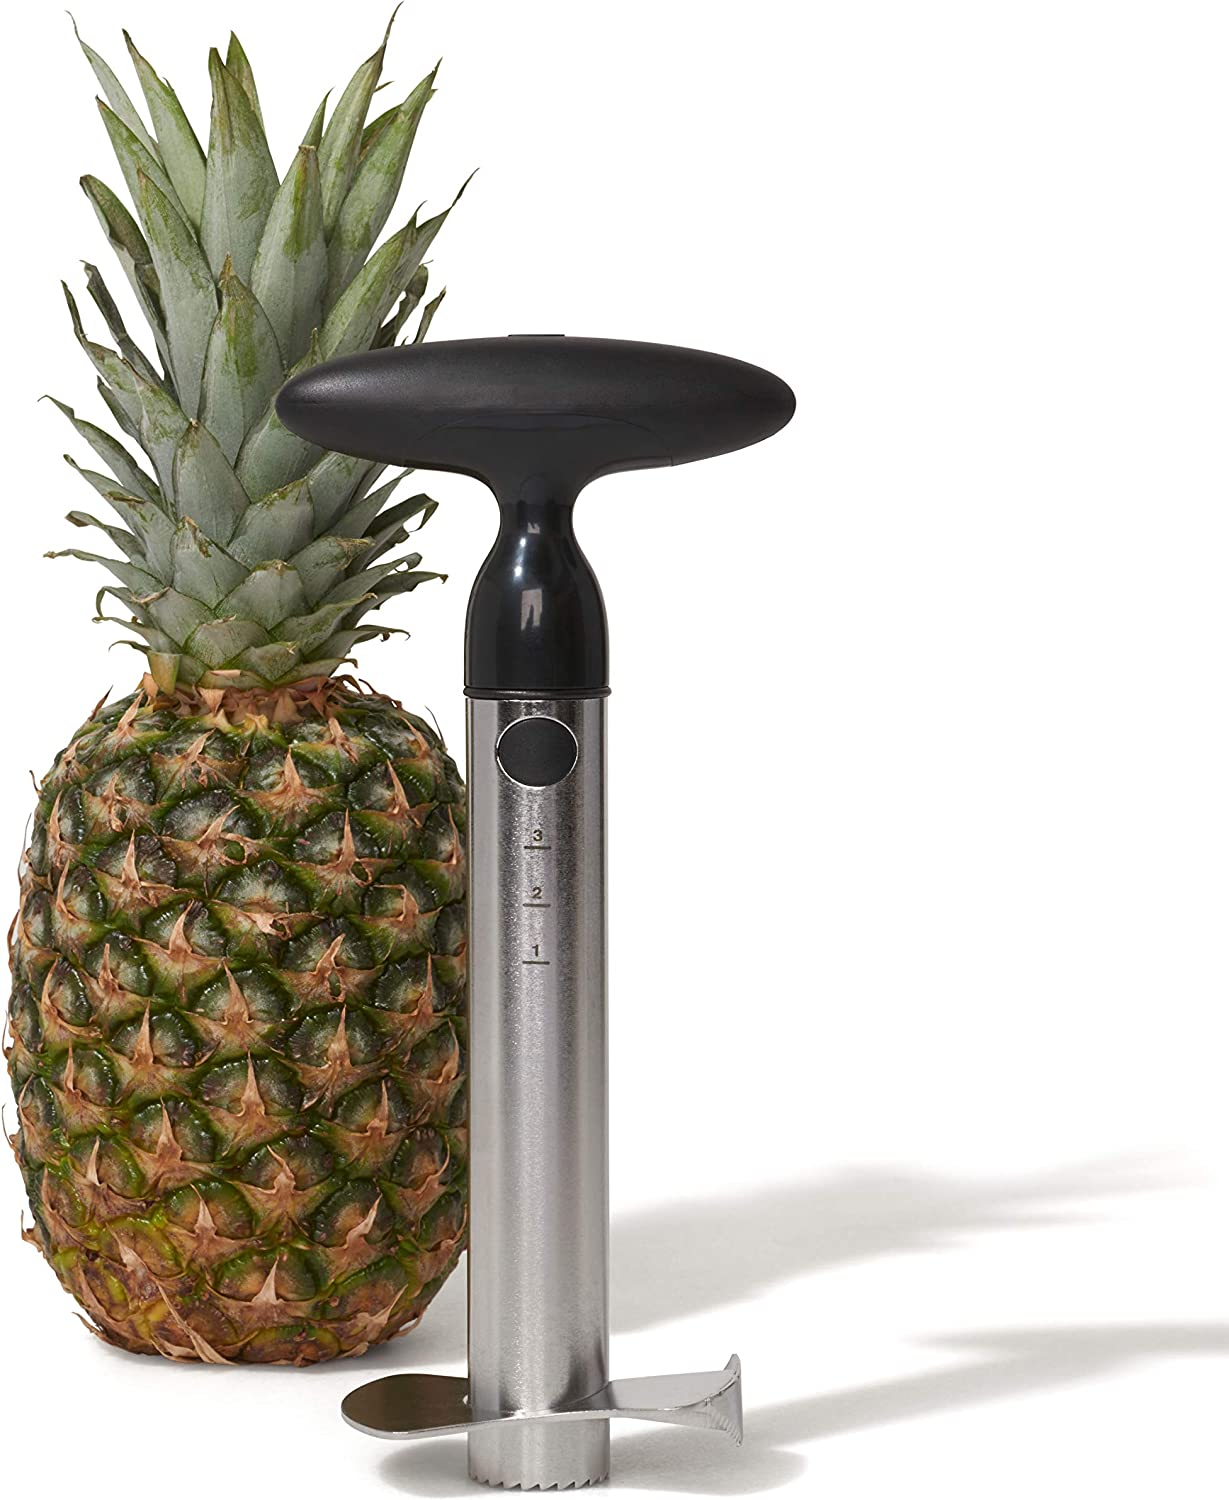 OXO 3108300 Good Grips Stainless Steel Pineapple Corer & Slicer,Silver/Black